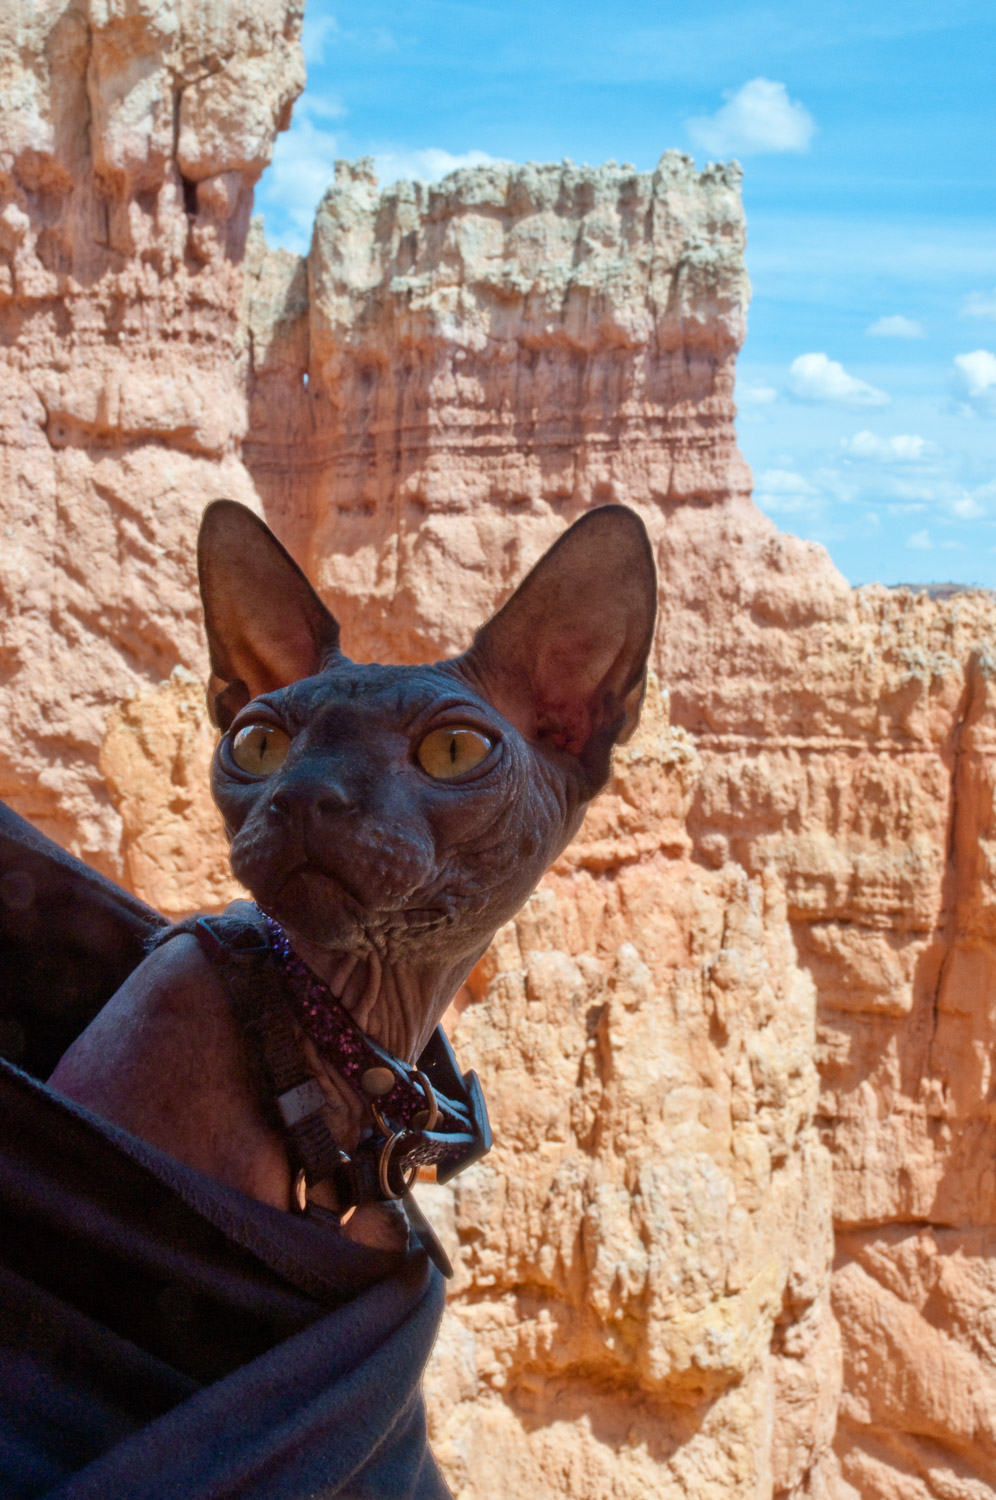 Omar peeks out of his carrier at Bryce Canyon National Park in Utah.